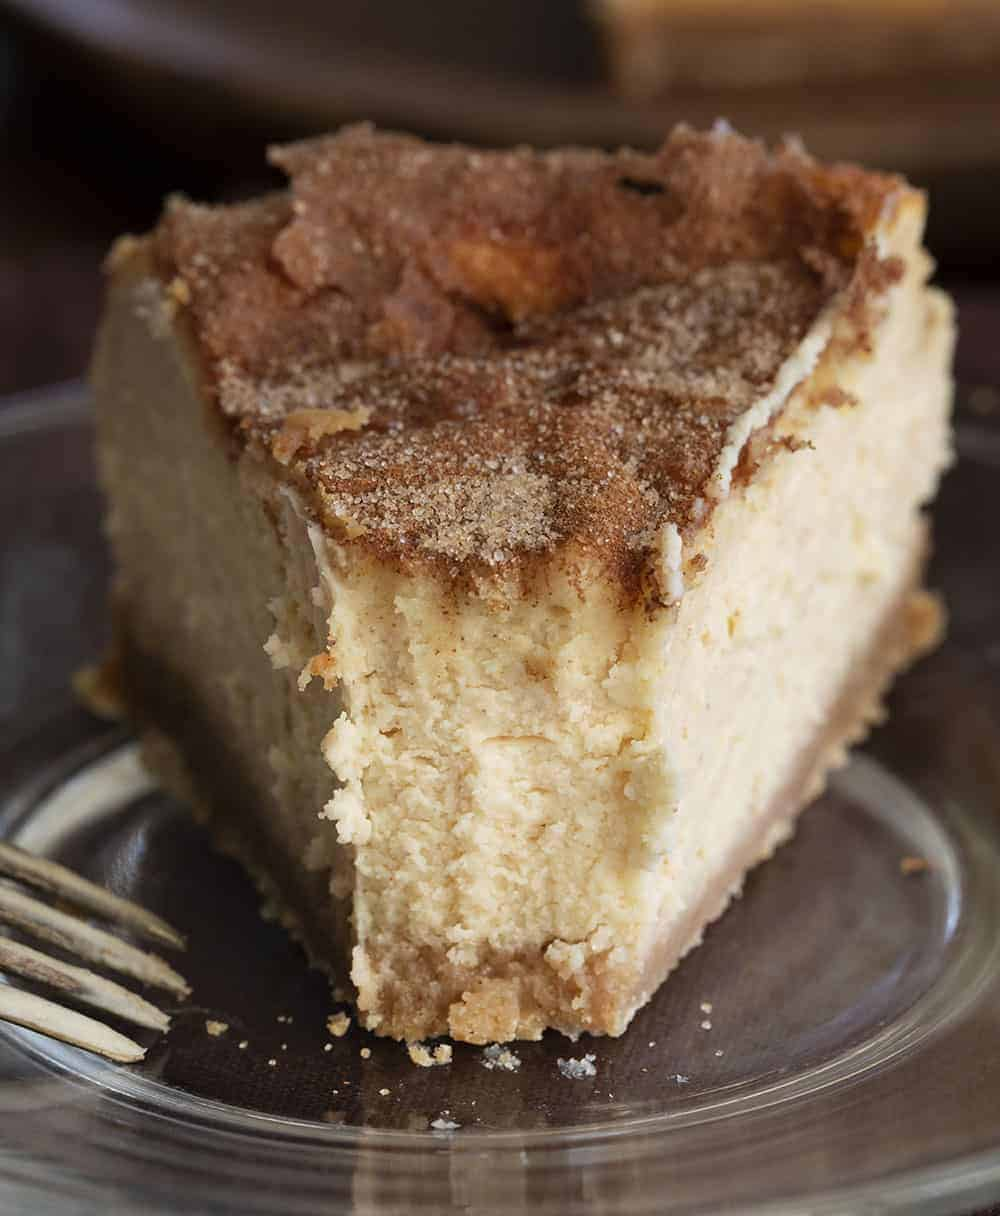 Slice of Snickerdoodle Cheesecake With Bite Missing